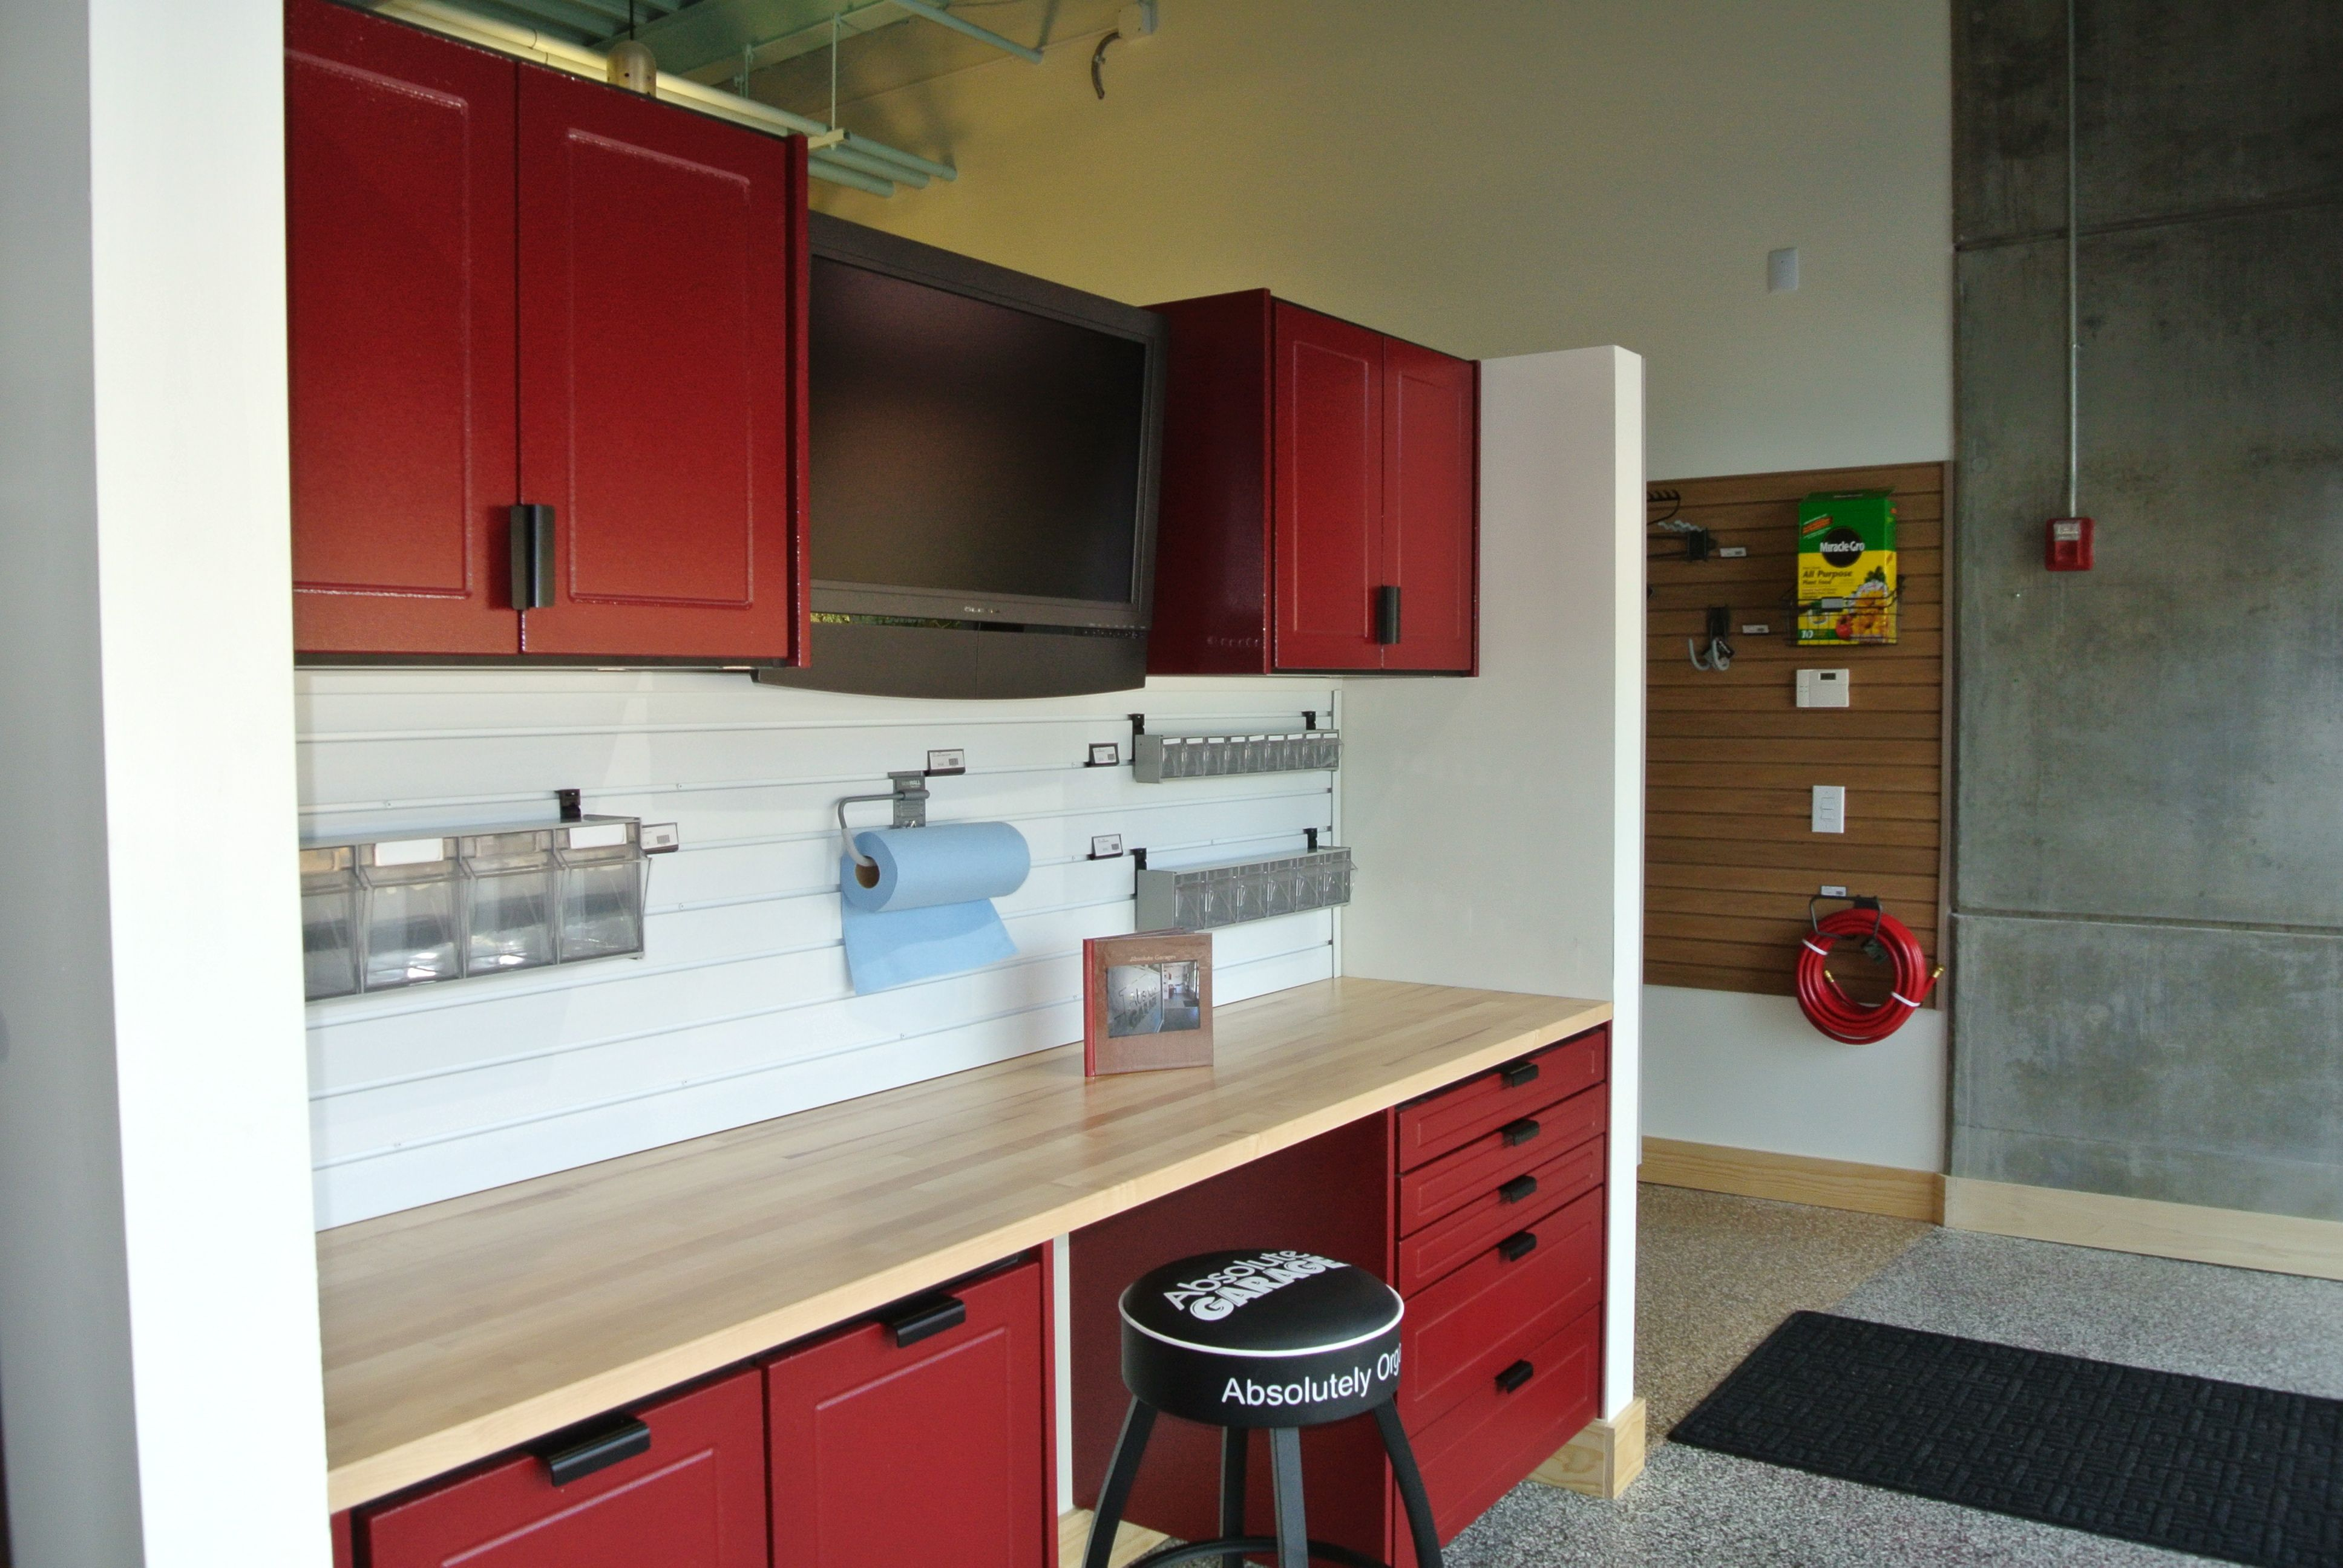 cabinets gallery cabinet plans decoration amusing best for garage cheap id sets